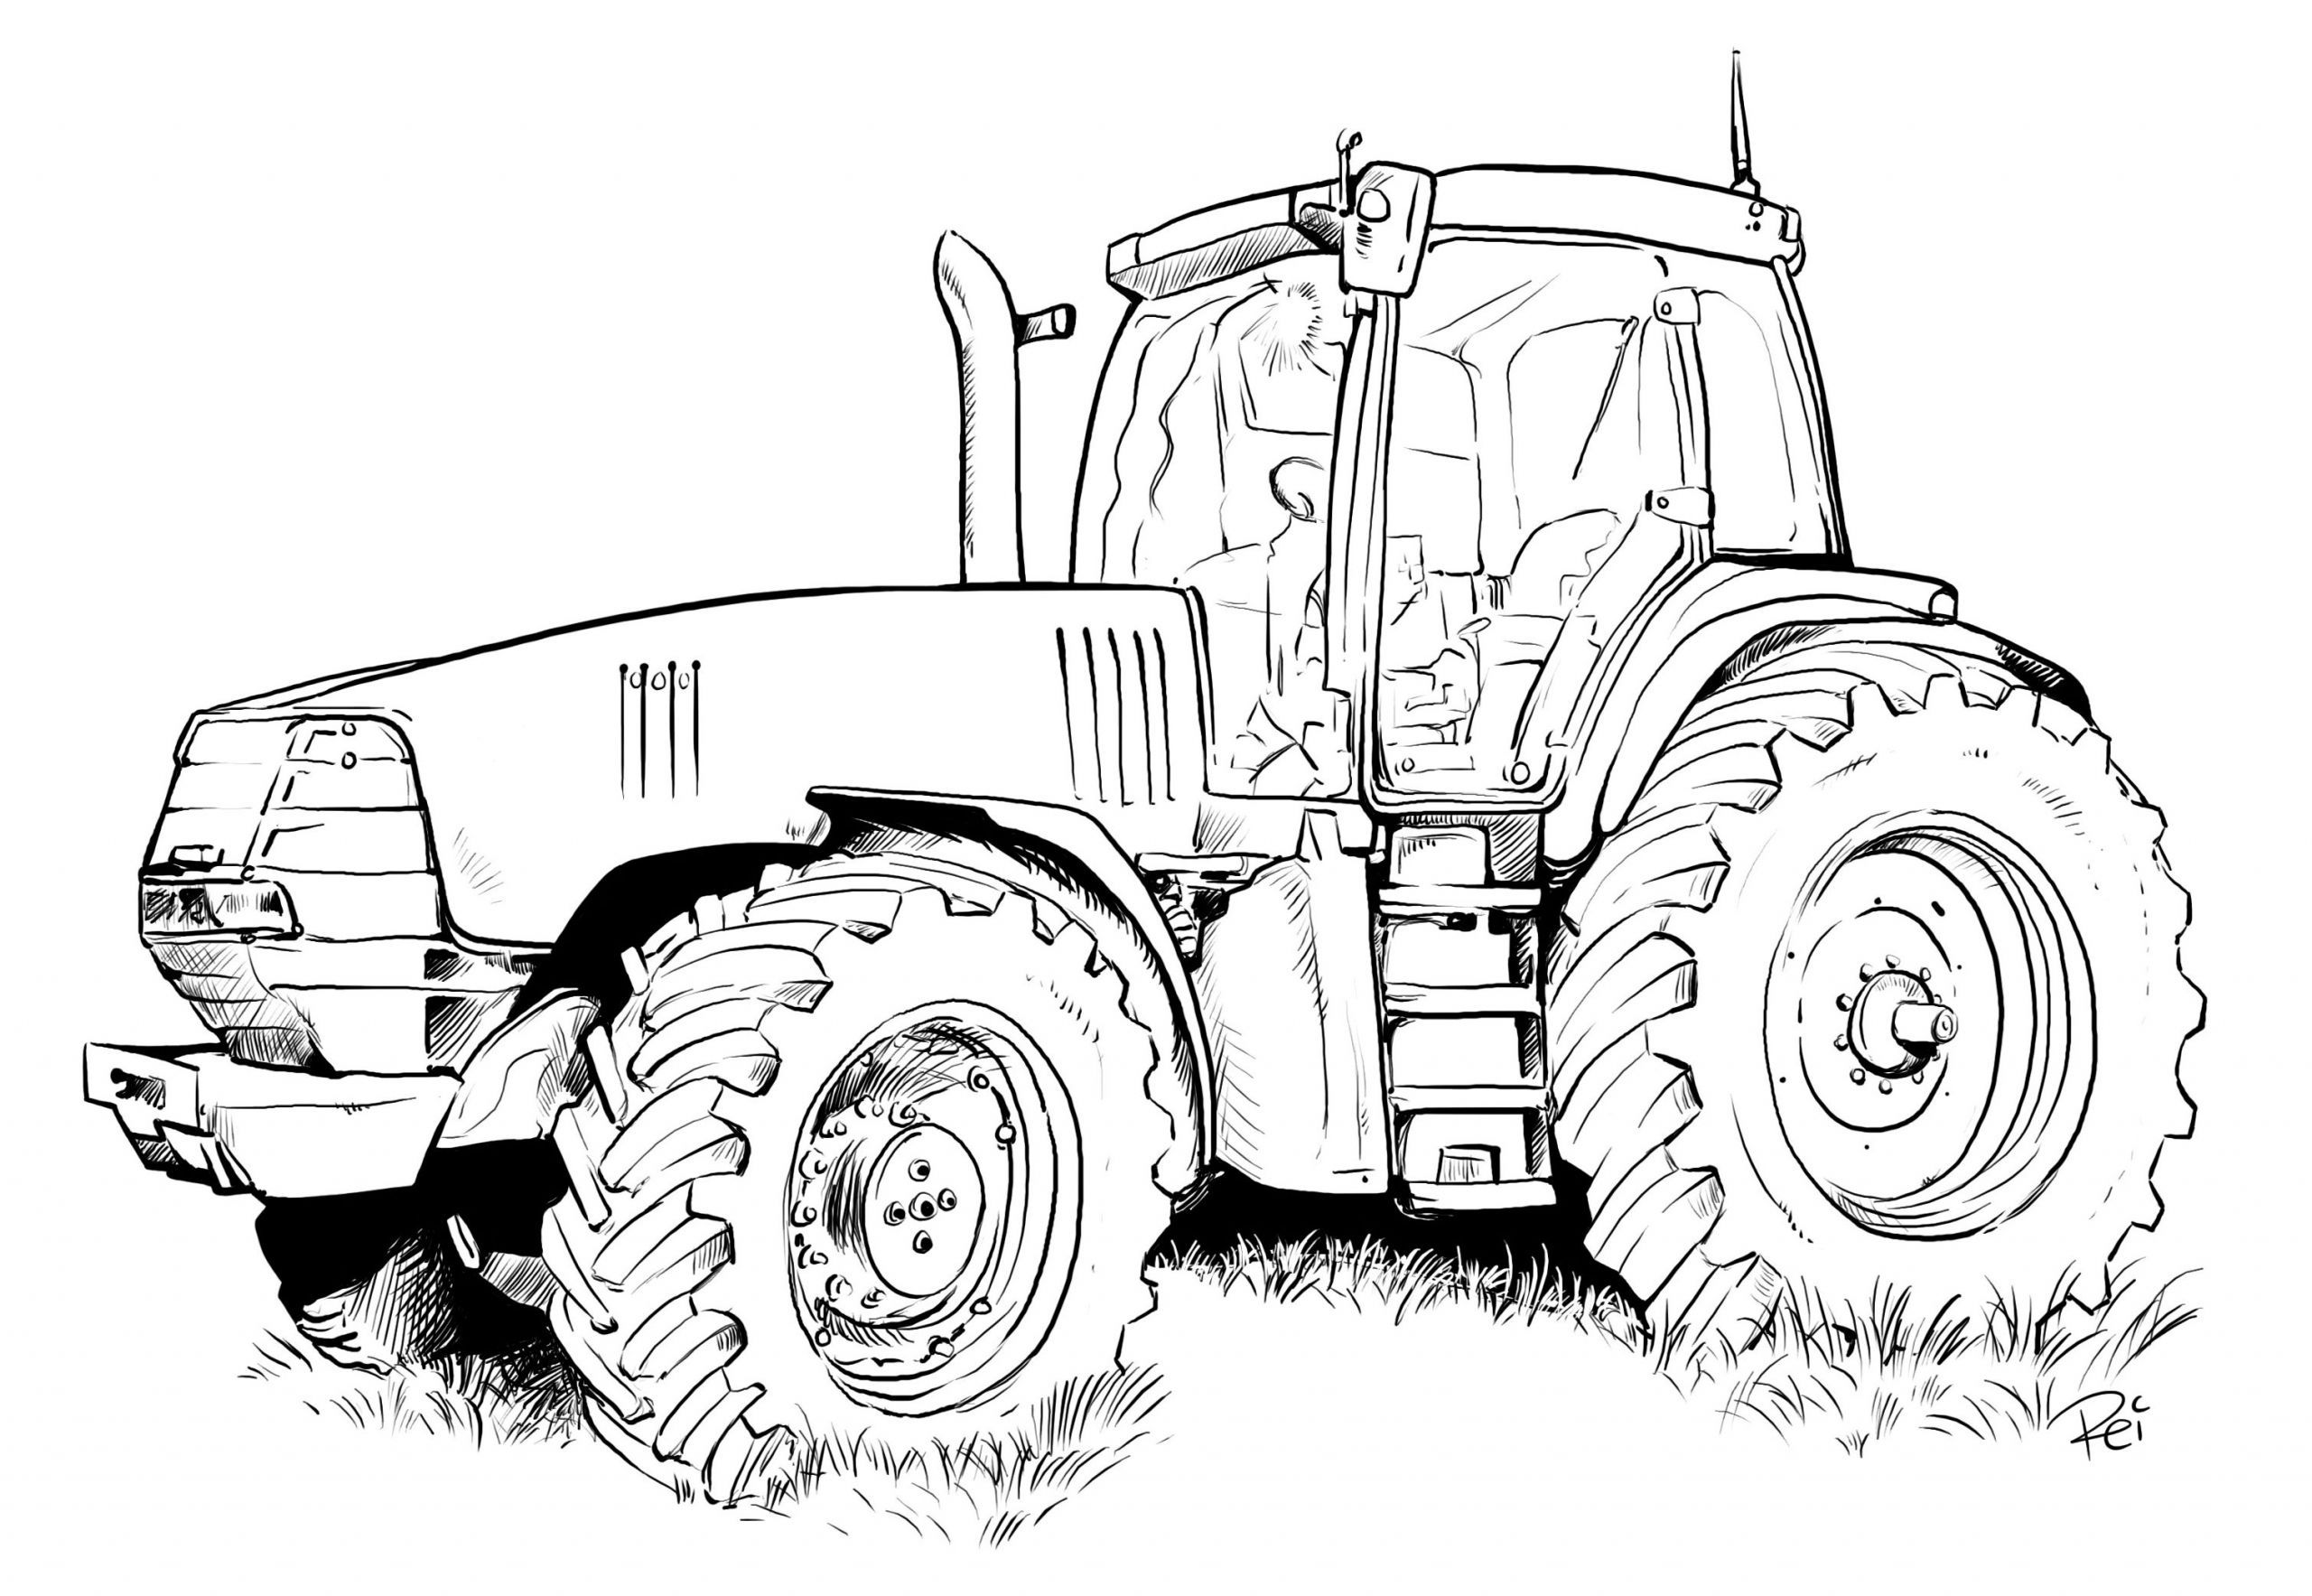 4 Tractor Coloring Pages 2017 A Restful Drawings A Z Tractor Coloring Pages Coloring Pages Inspirational Deer Coloring Pages